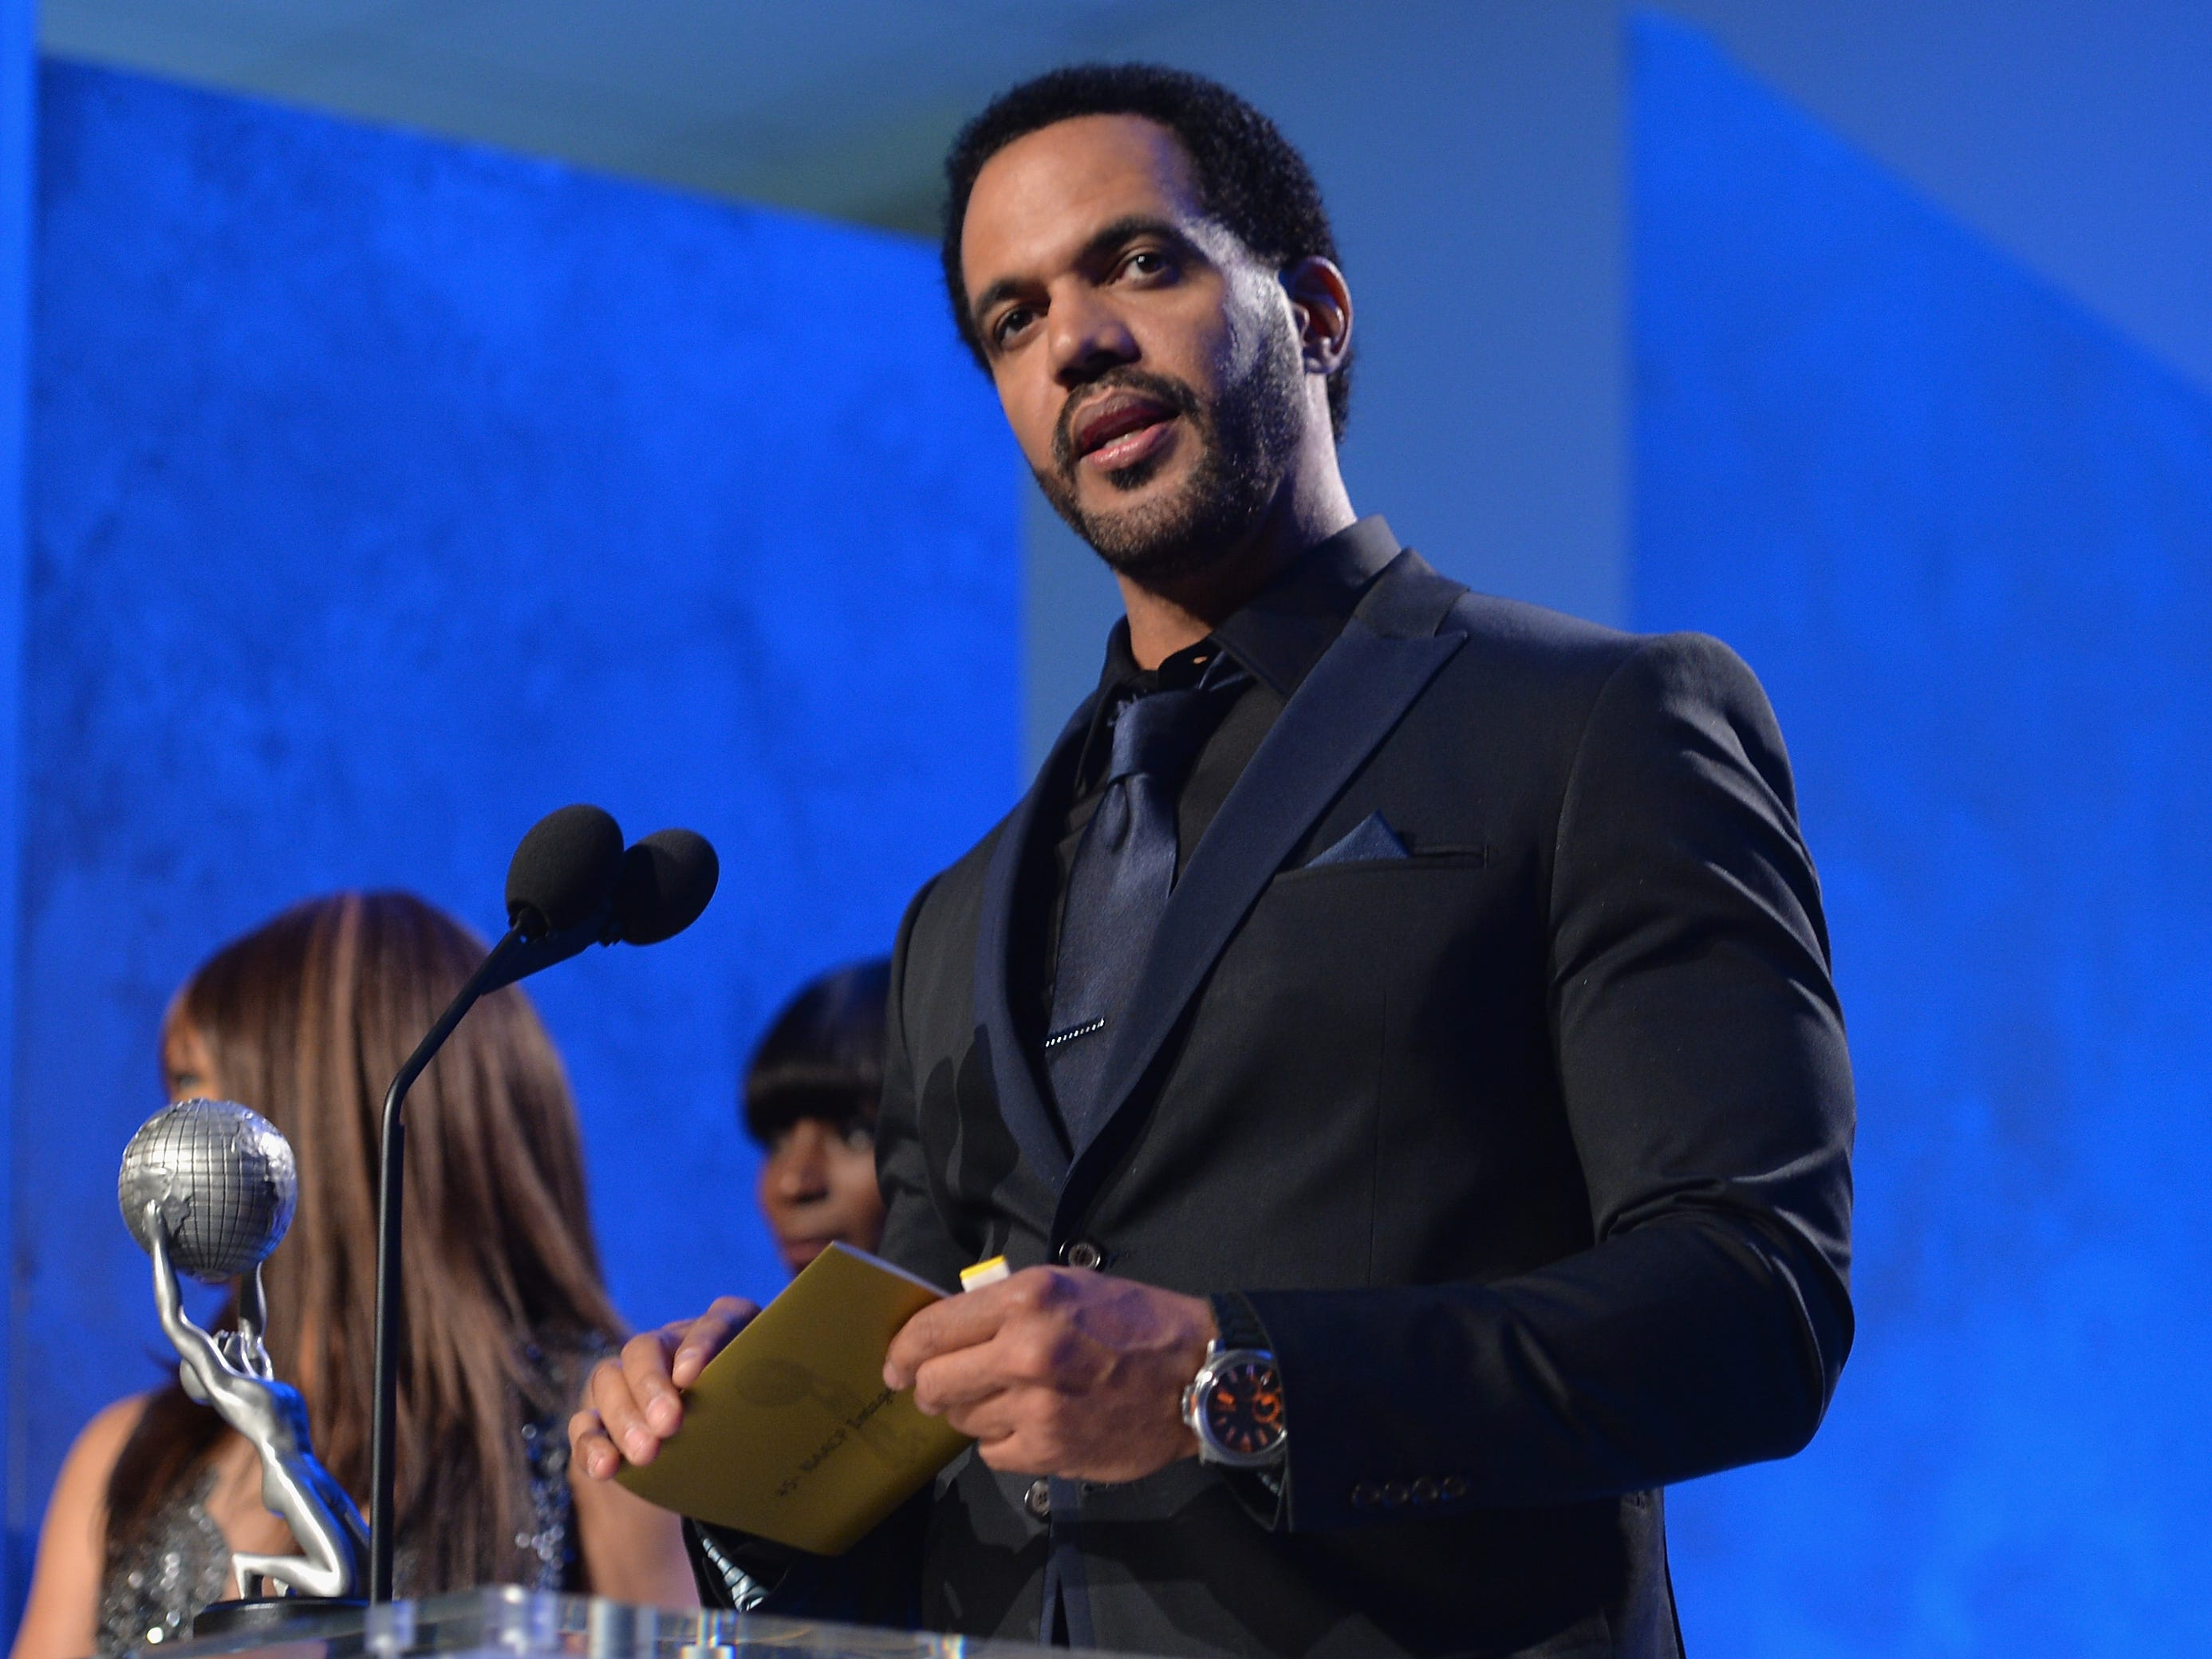 Kristoff St. John attends the 45th NAACP Awards Non-Televised Awards Ceremony, Feb. 21, 2014 in Pasadena, Calif.